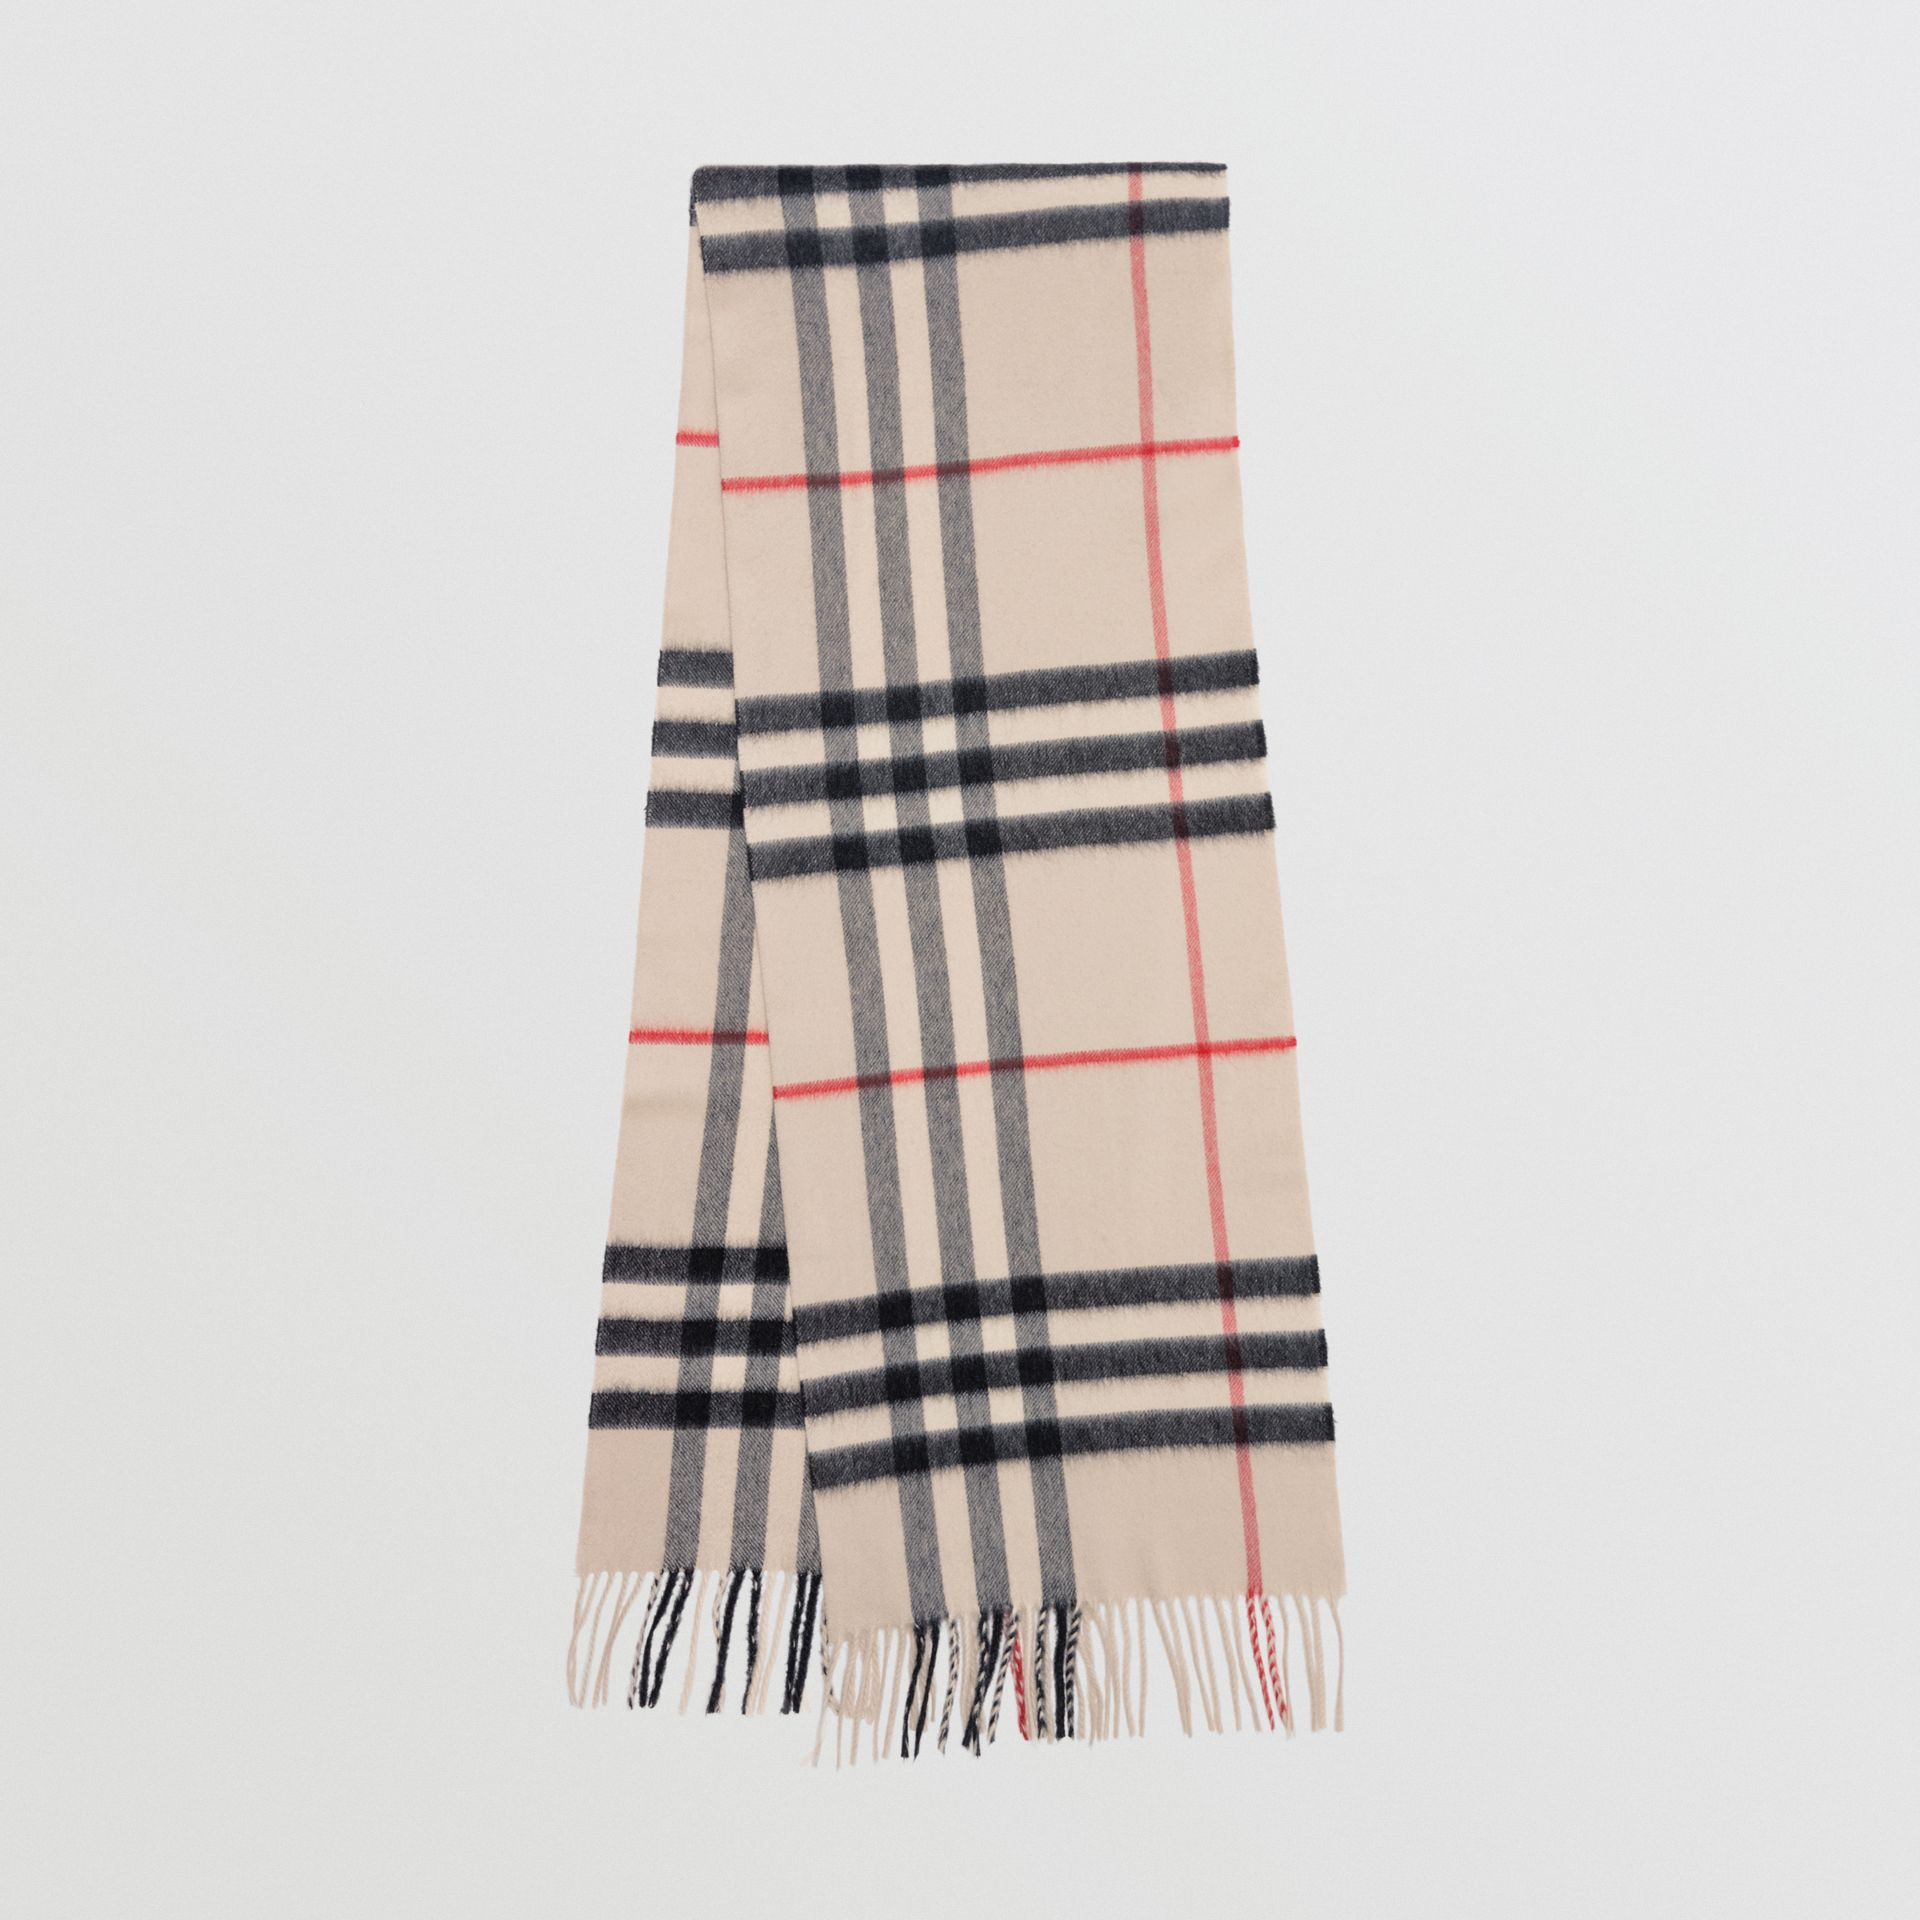 The Classic Cashmere Scarf in Check in White  375492059a